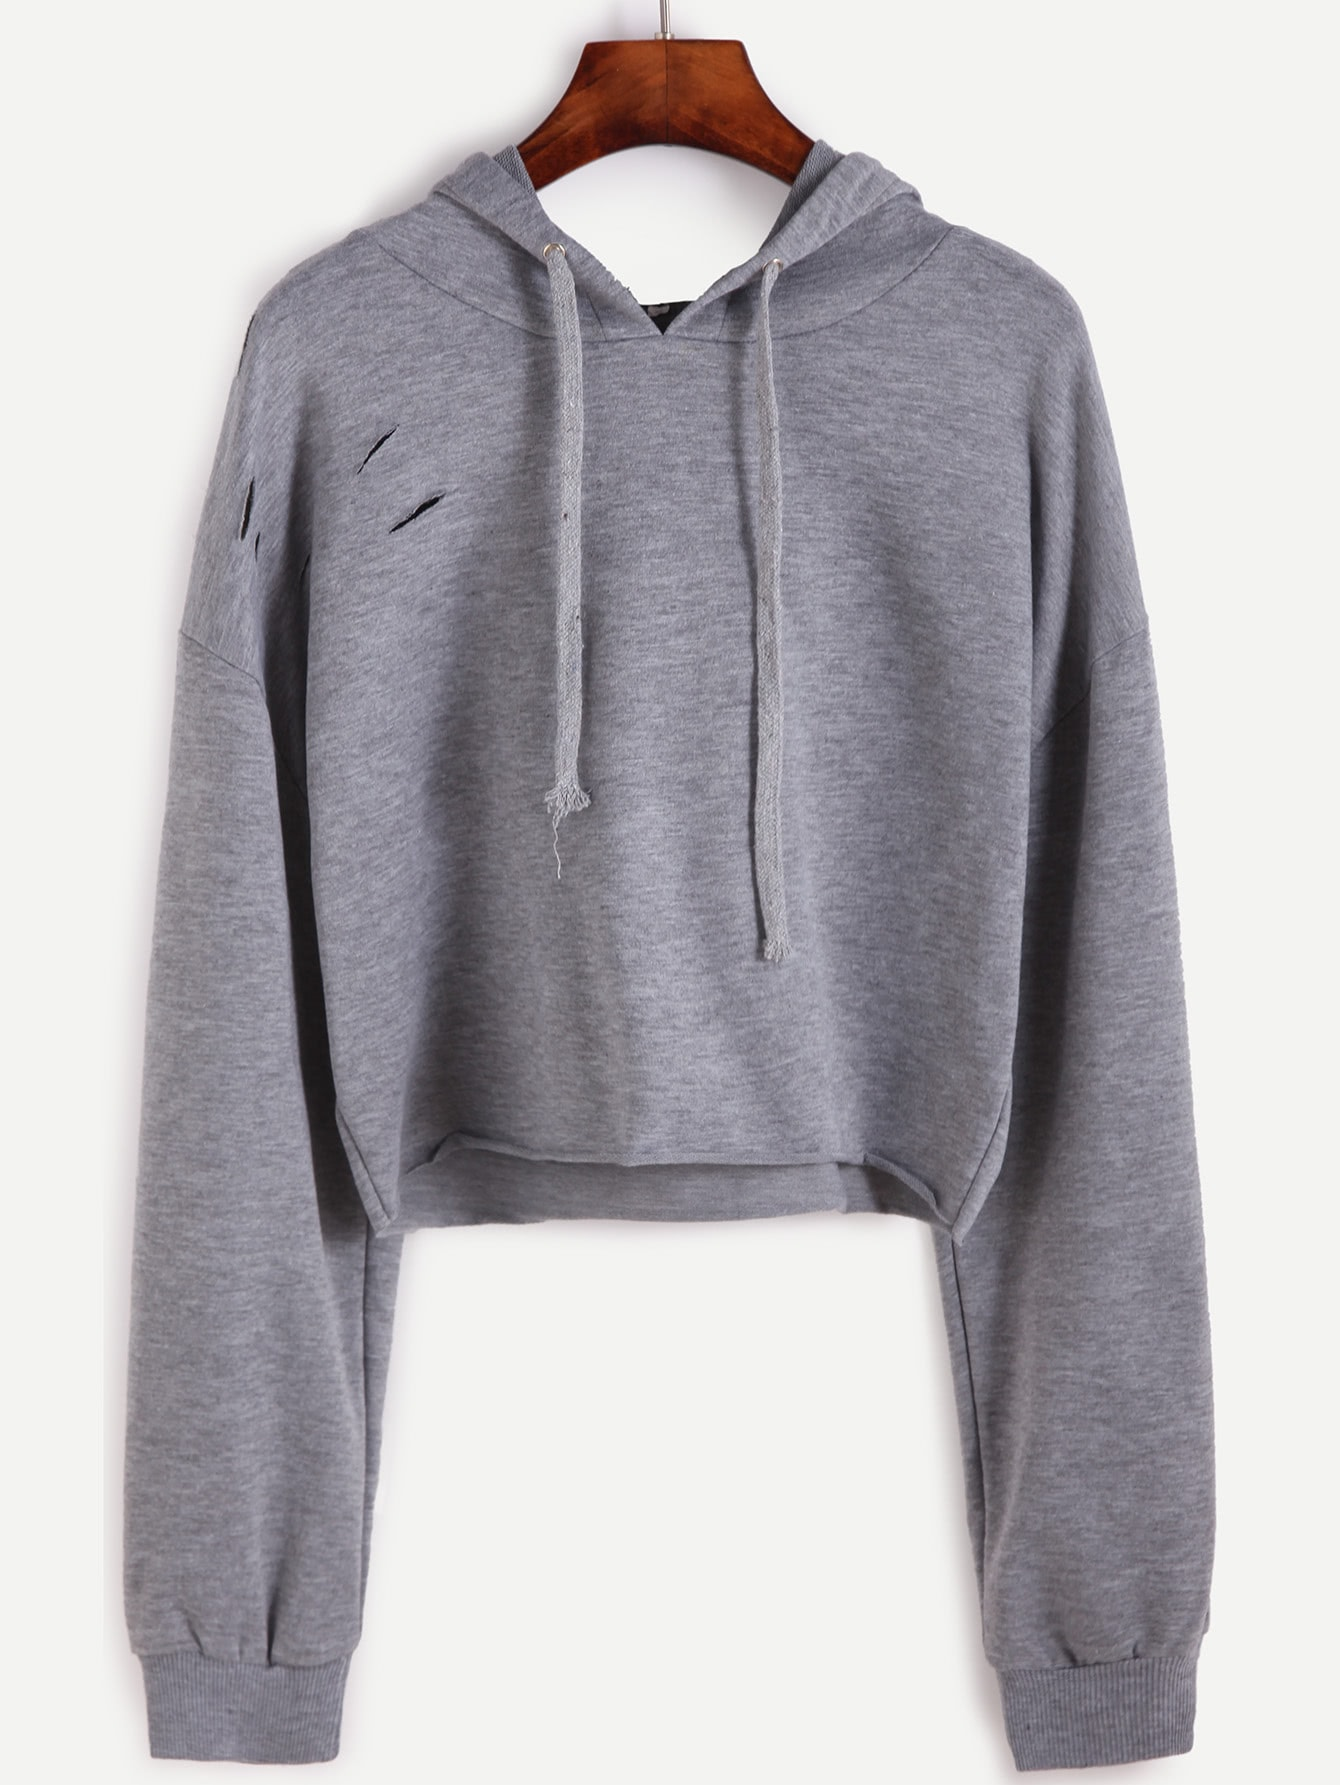 Drop Shoulder Ripped Drawstring Hooded Crop Sweatshirt